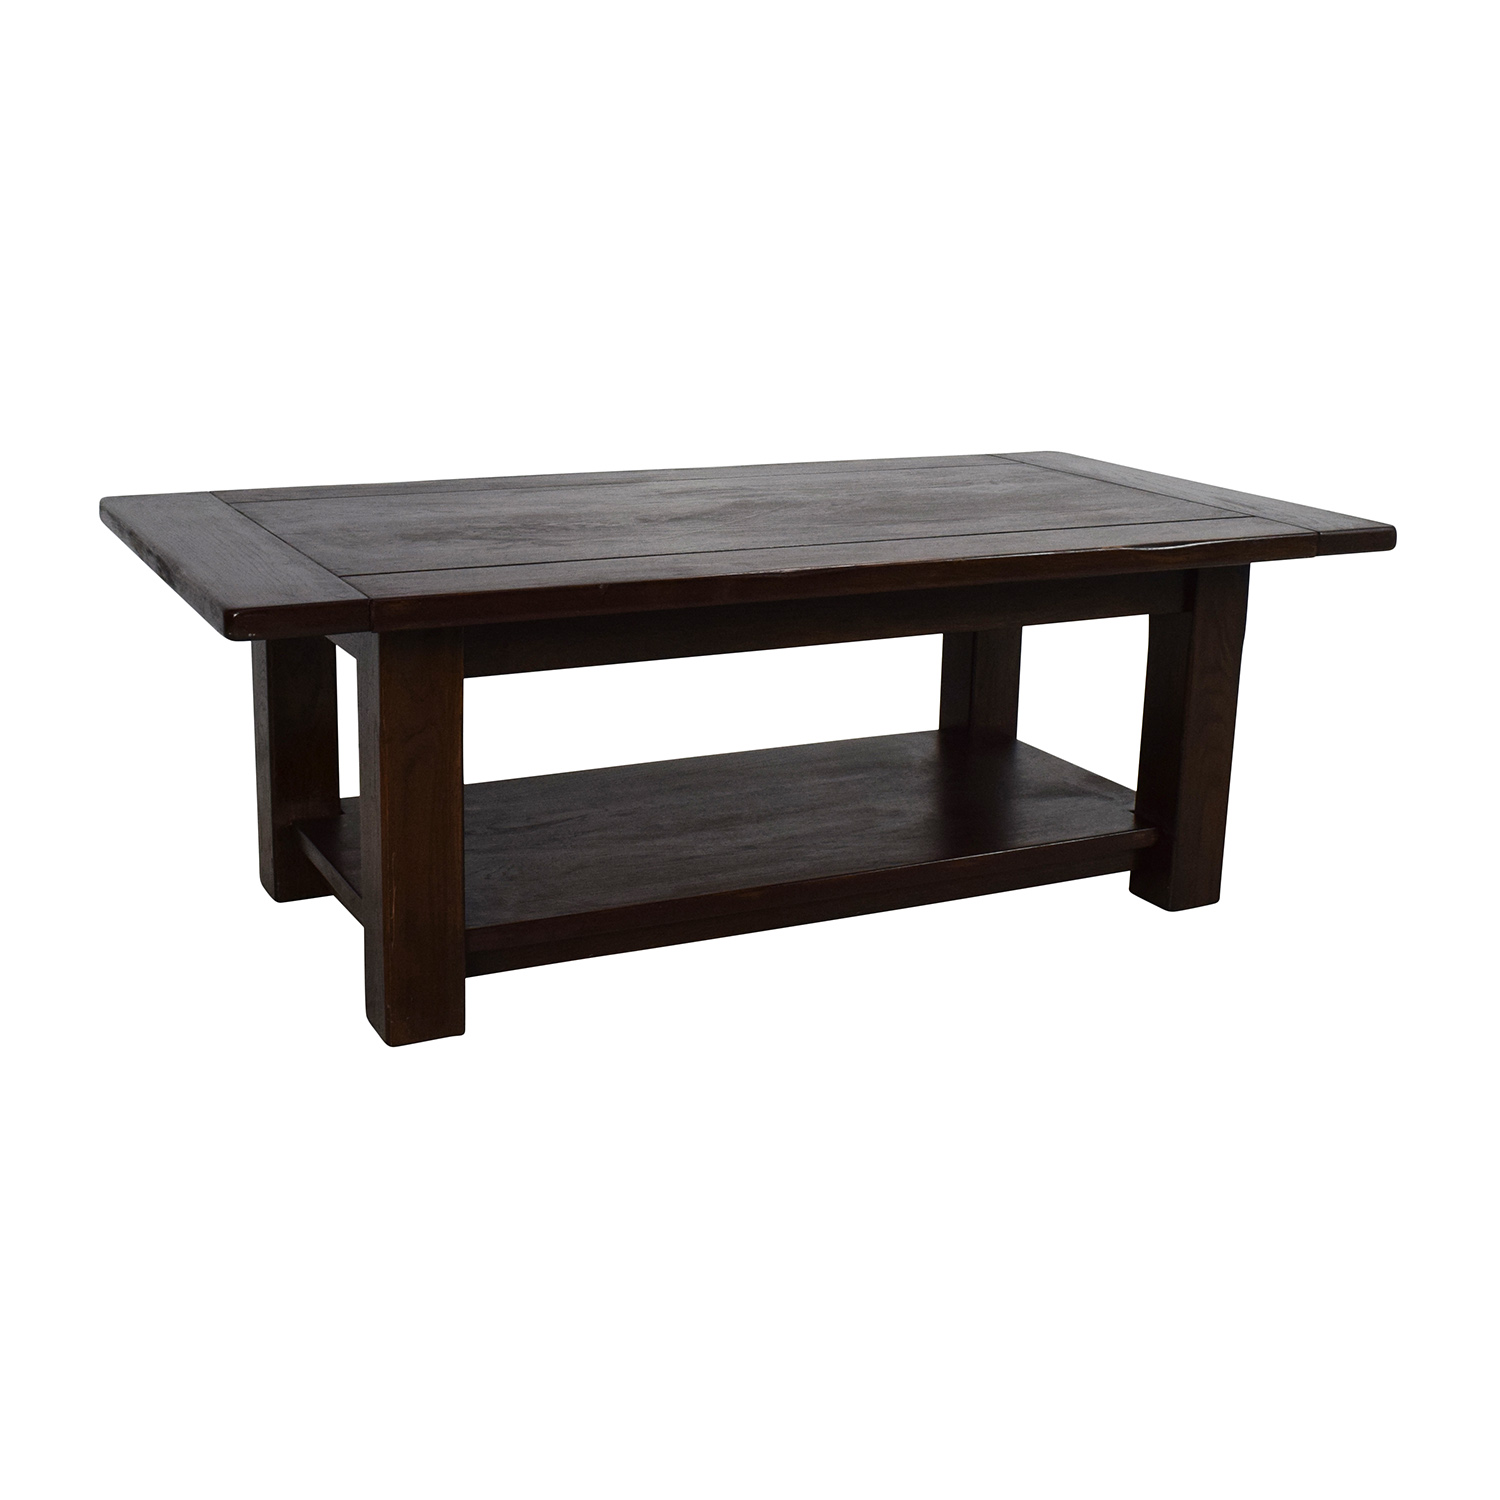 Coffee Tables Images 59 Off West Elm West Elm Wooden Coffee Table Tables